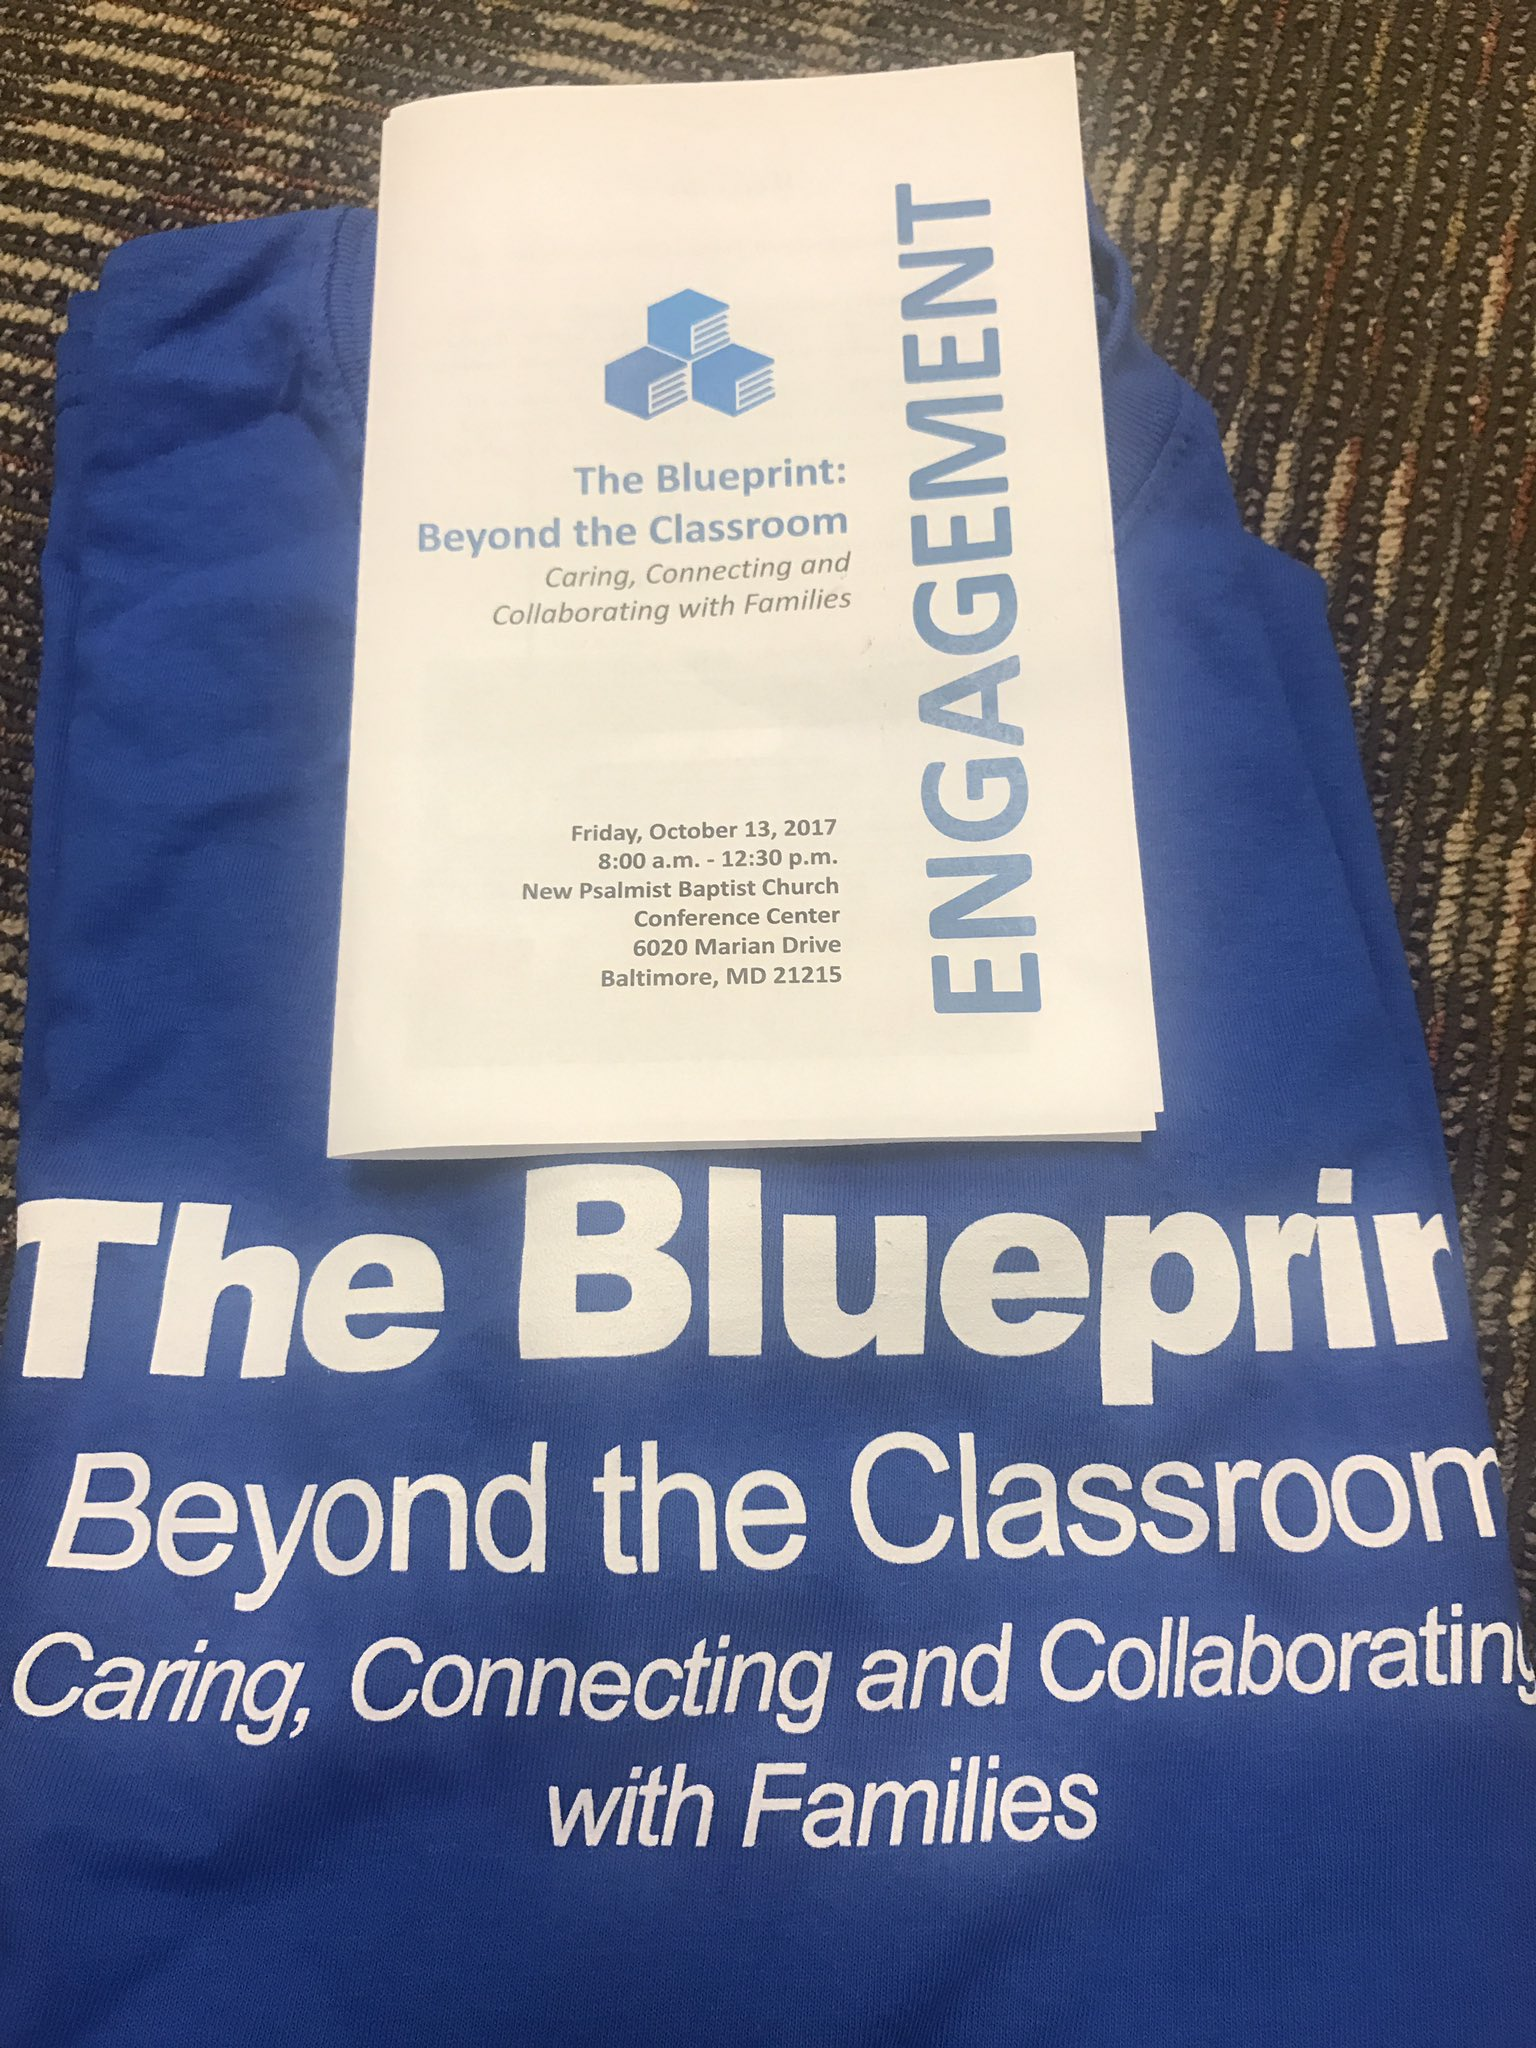 Blsyw on twitter the blueprint beyond the classroom caring blsyw on twitter the blueprint beyond the classroom caring connecting and collaborating with families conference malvernweather Gallery